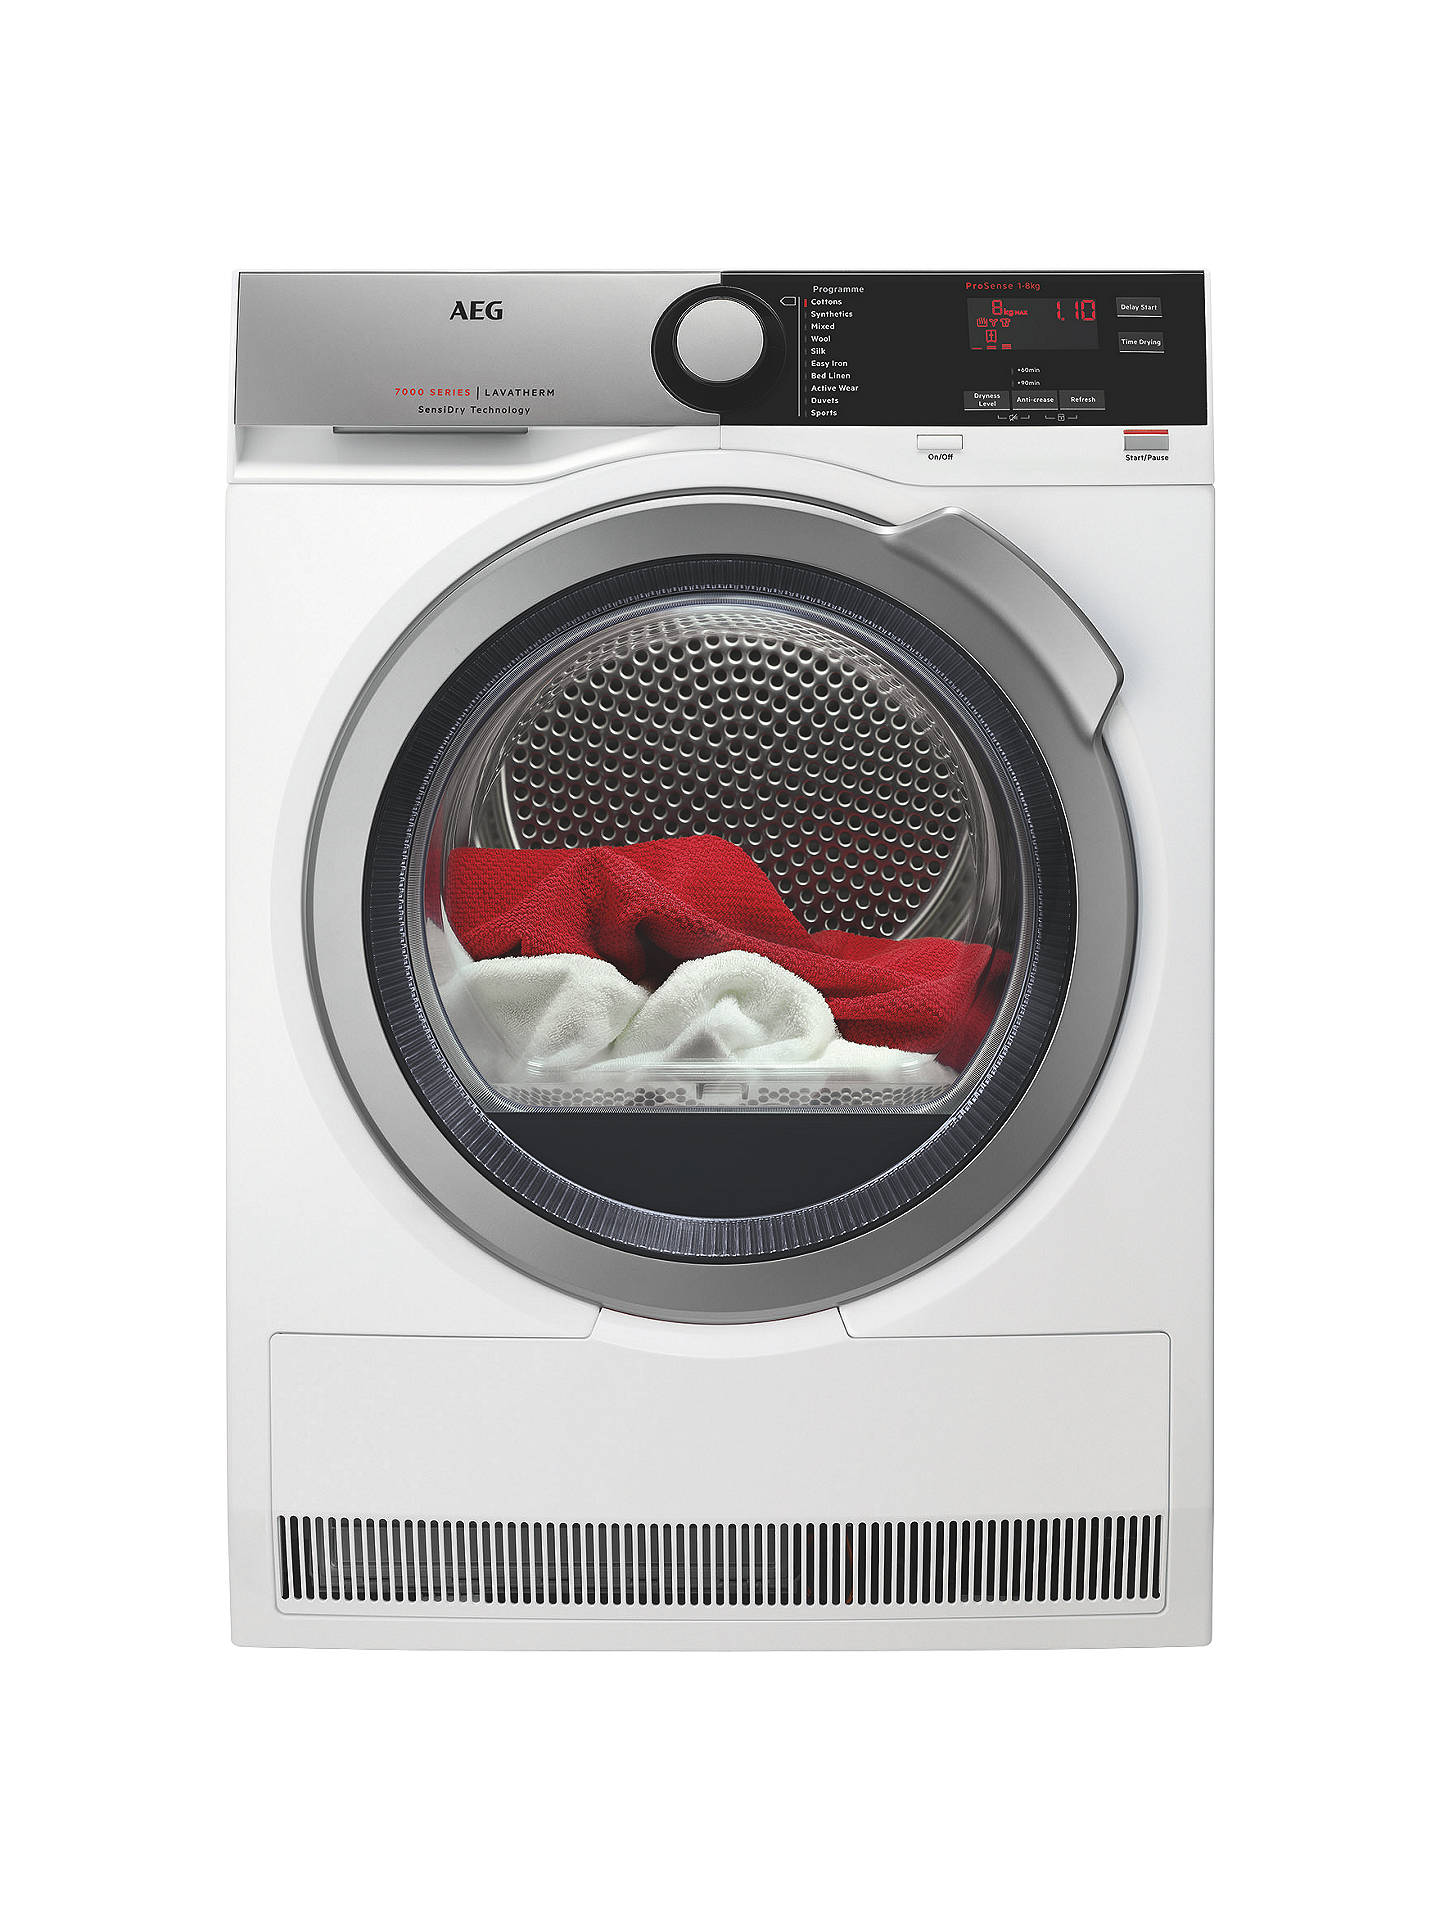 BuyAEG T7DEE835R Heat Pump Tumble Dryer, 8kg Load, A+ Energy Rating, White Online at johnlewis.com